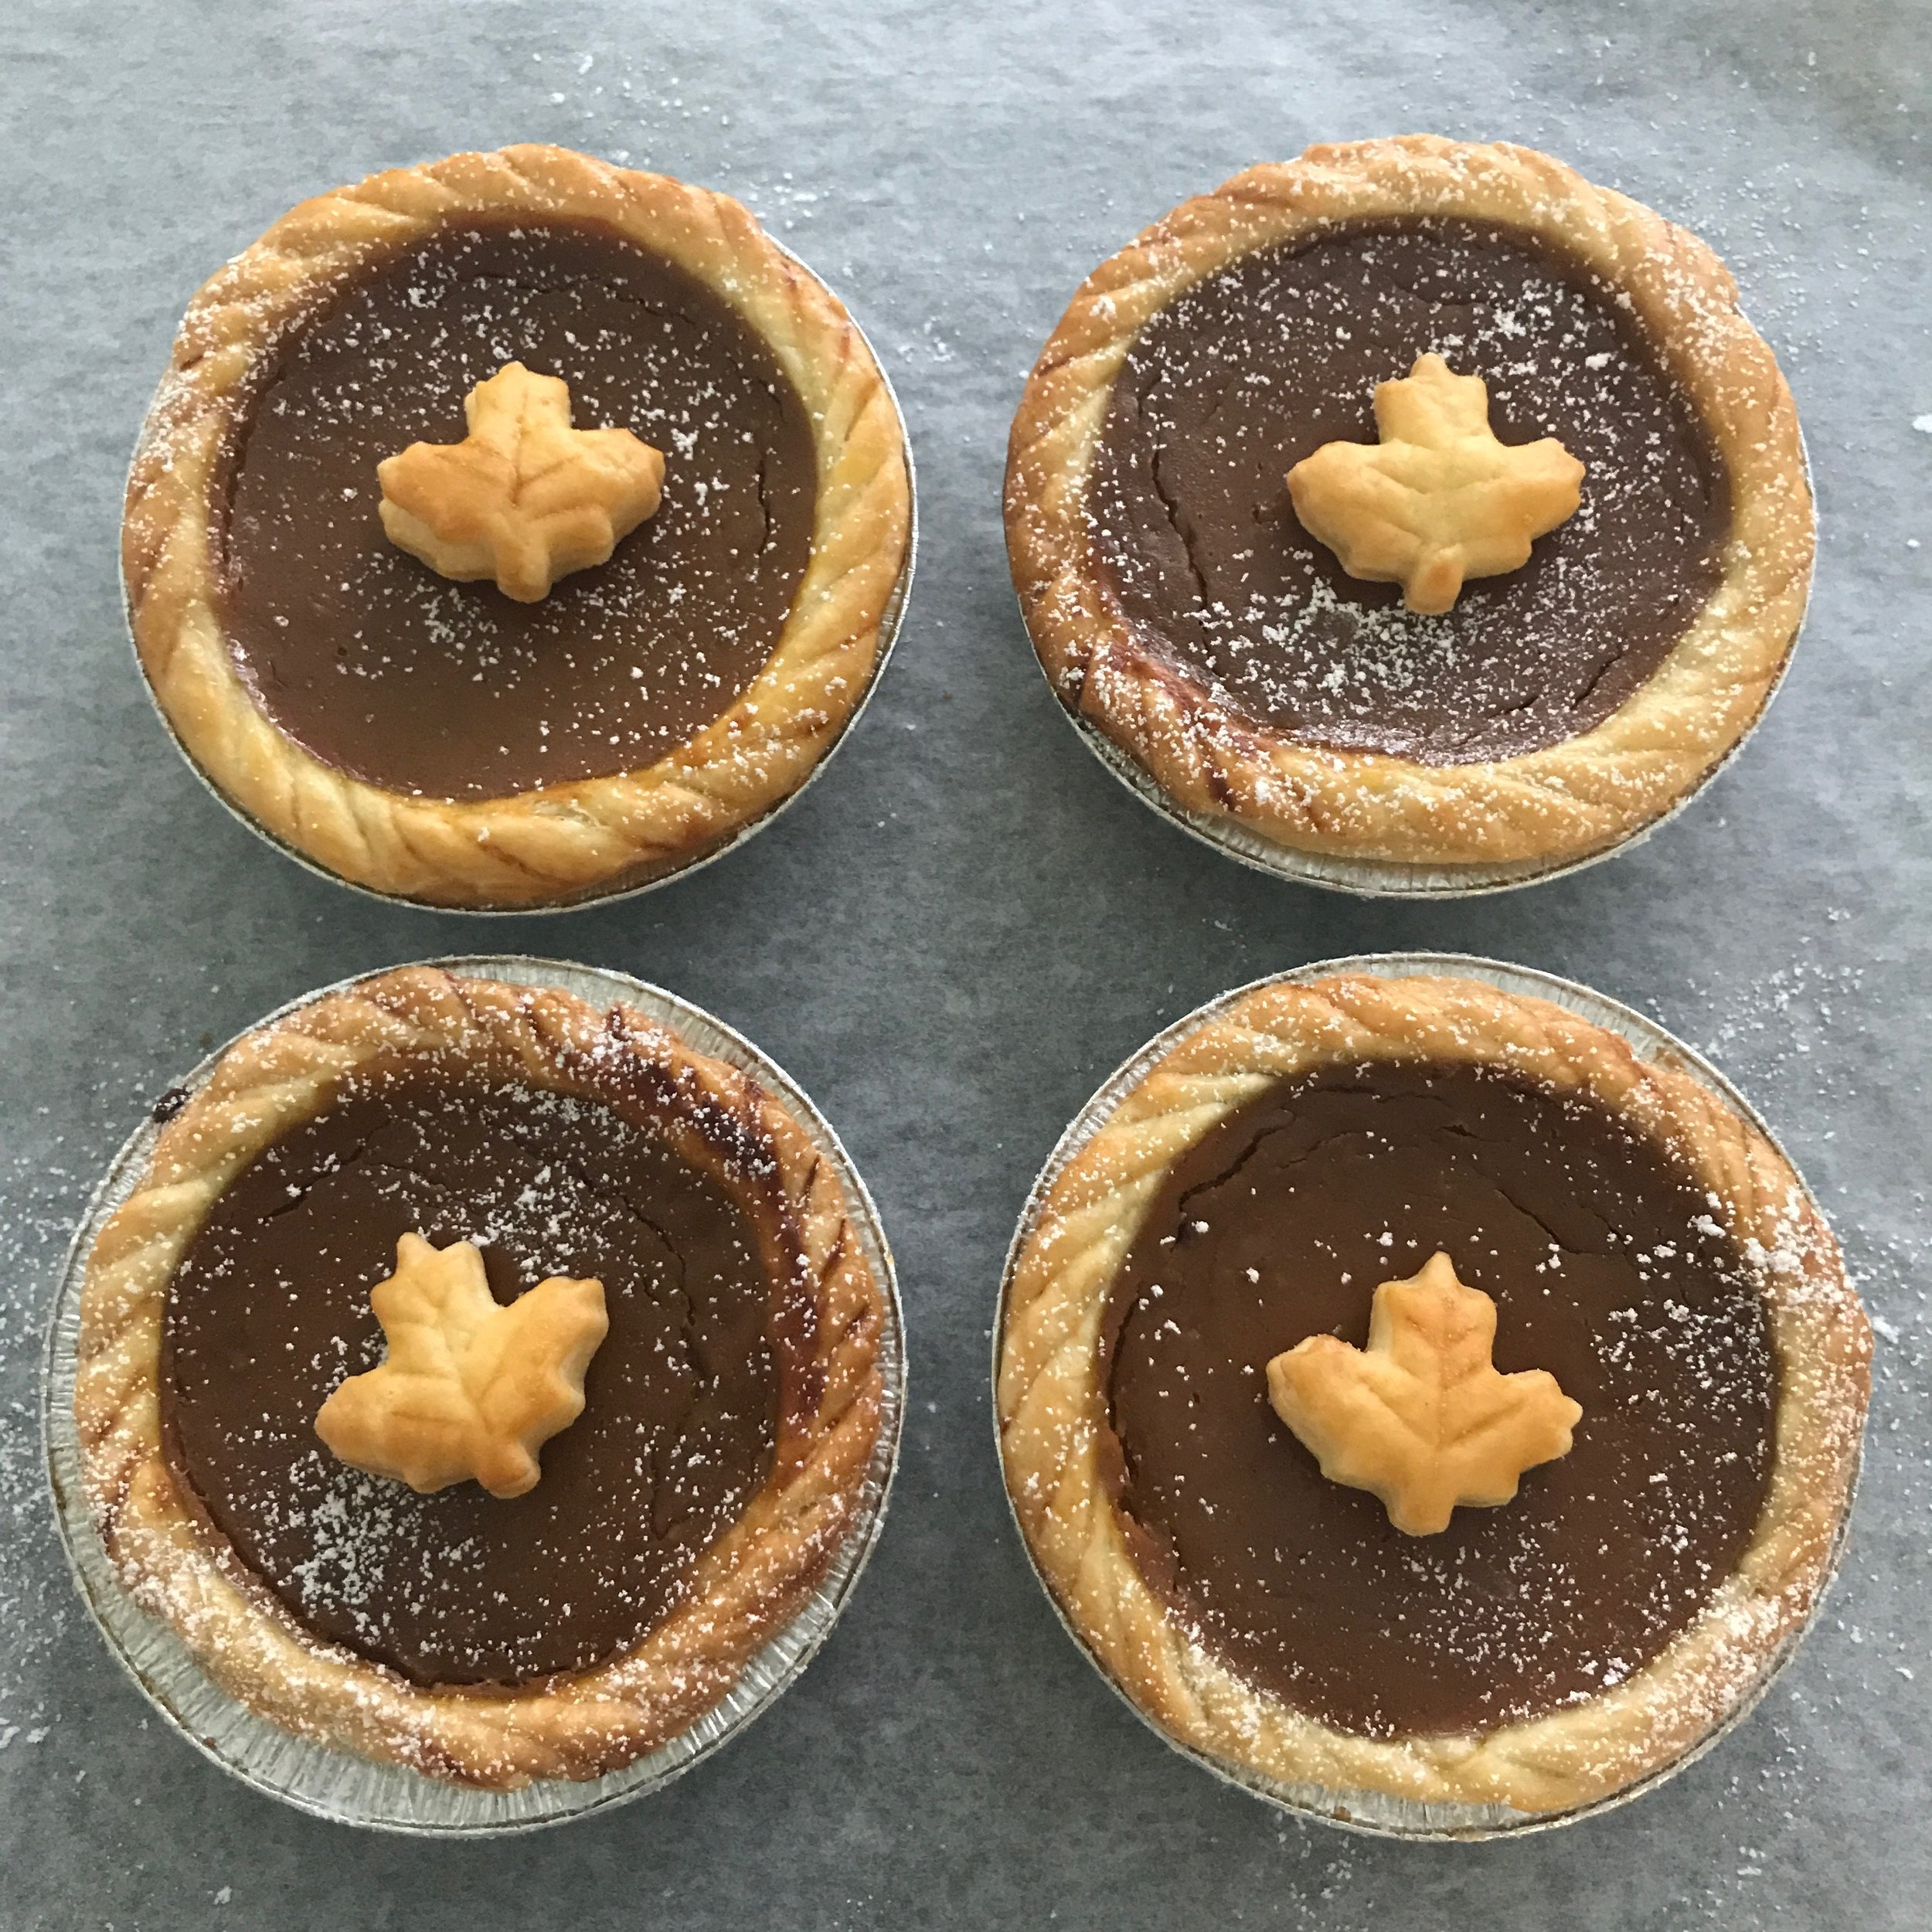 Even pies can be decorated for the season, like these cute little pies perfect for the fall